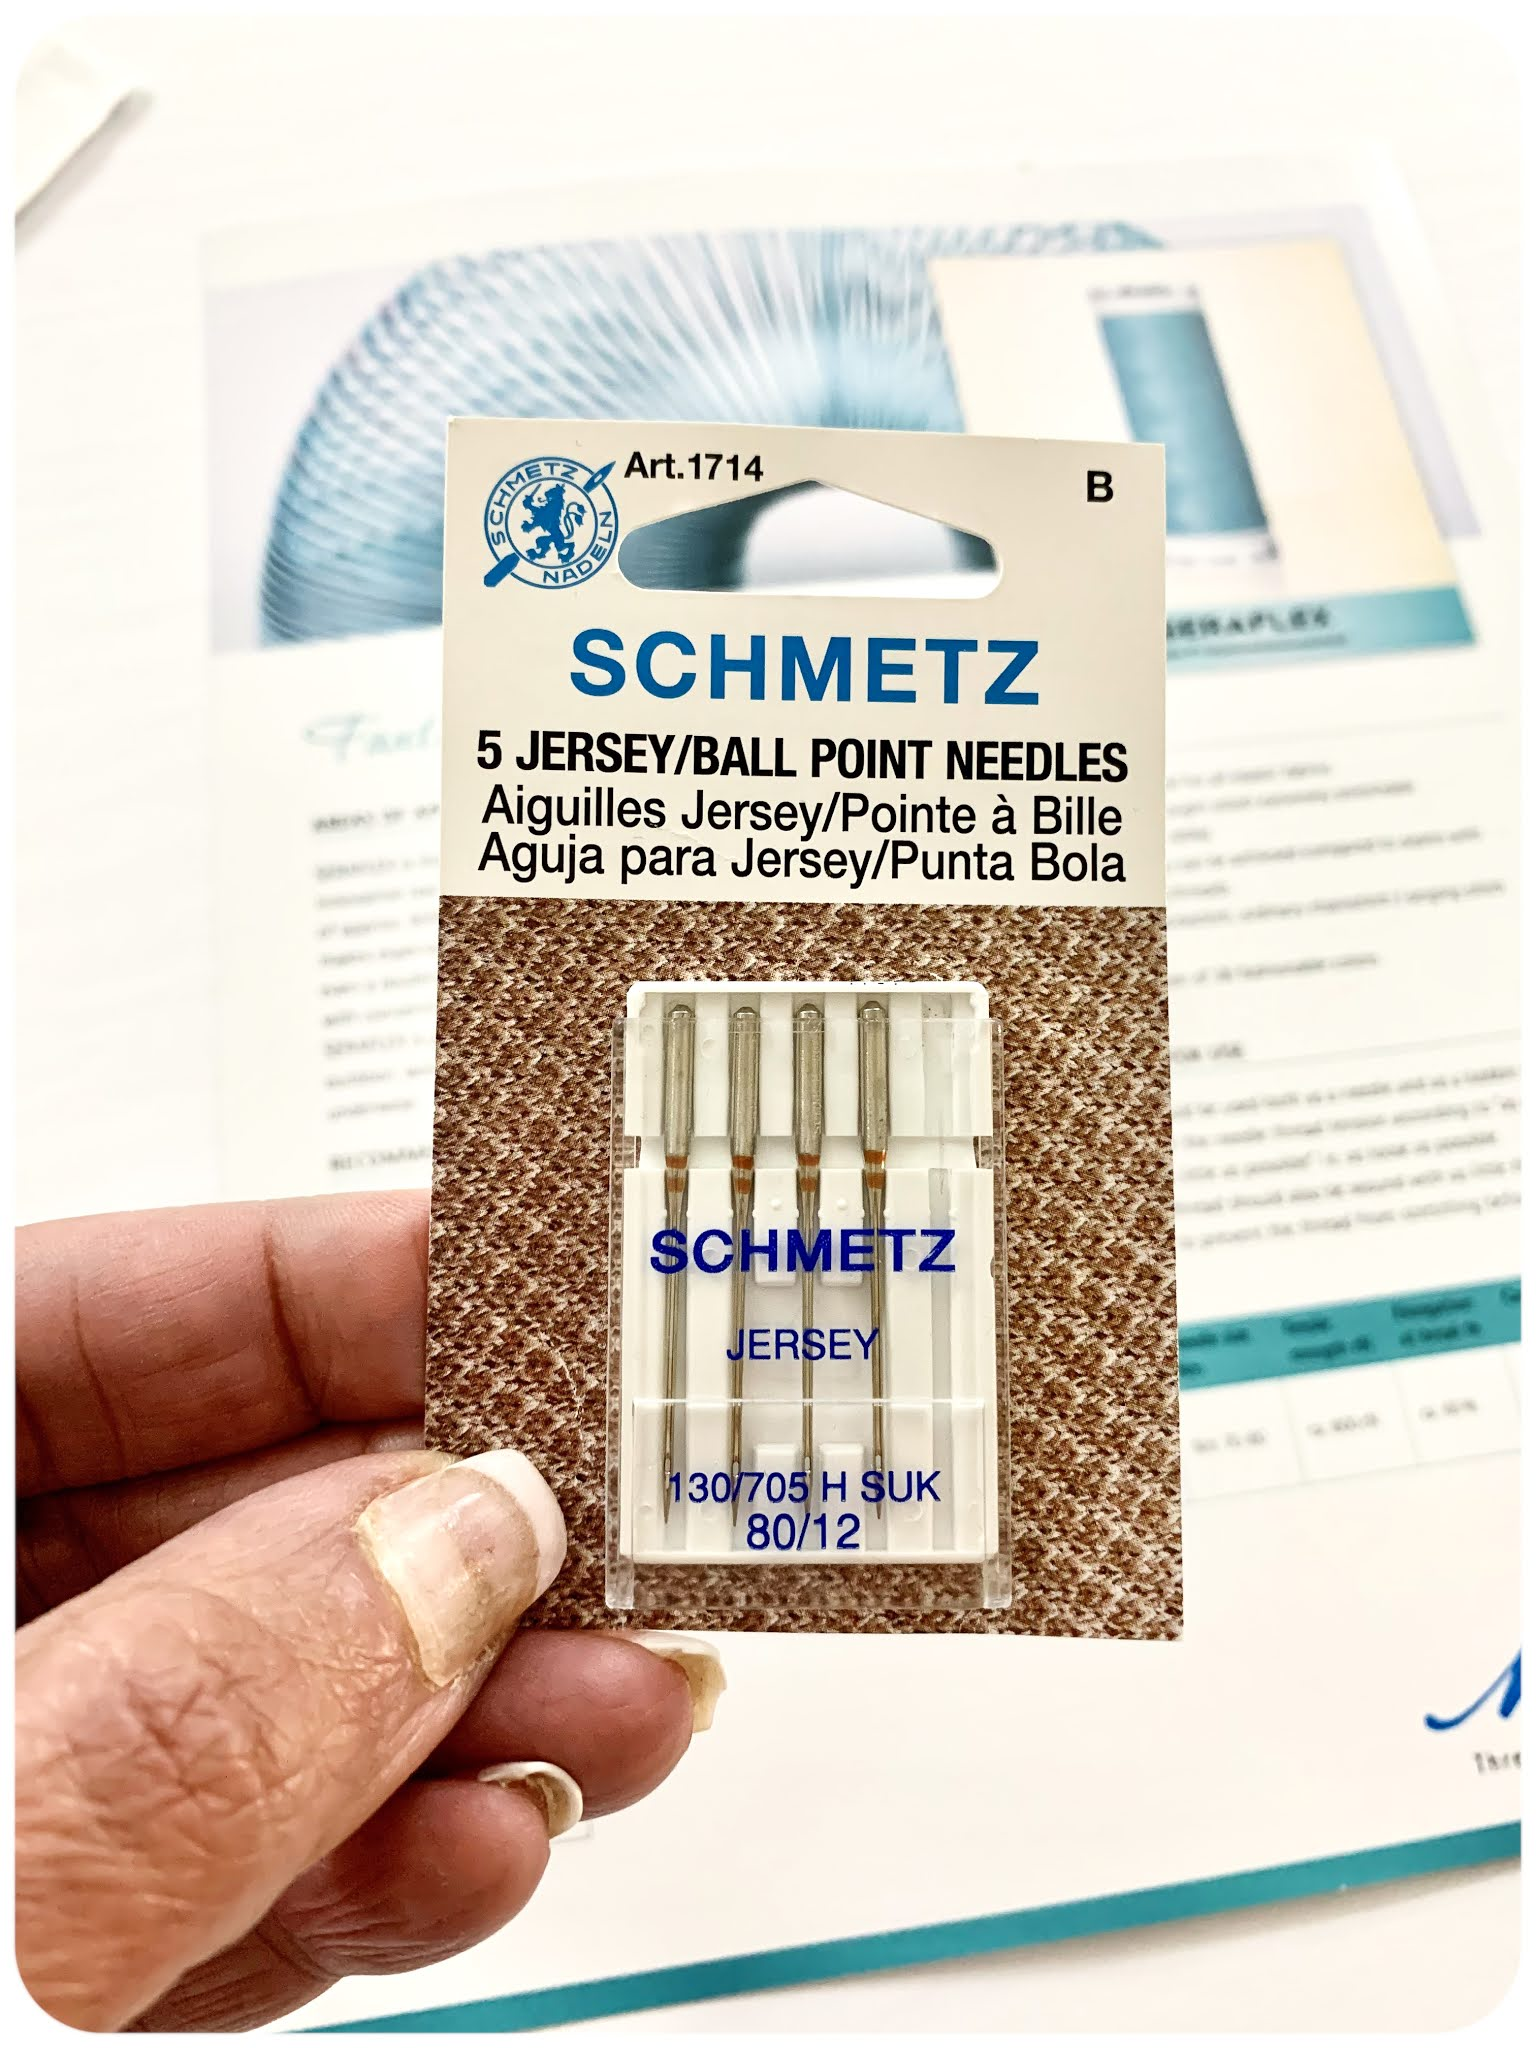 Sewing Knits using Schmetz 80/12 Stretch Needles - Erica Bunker DIY Style!